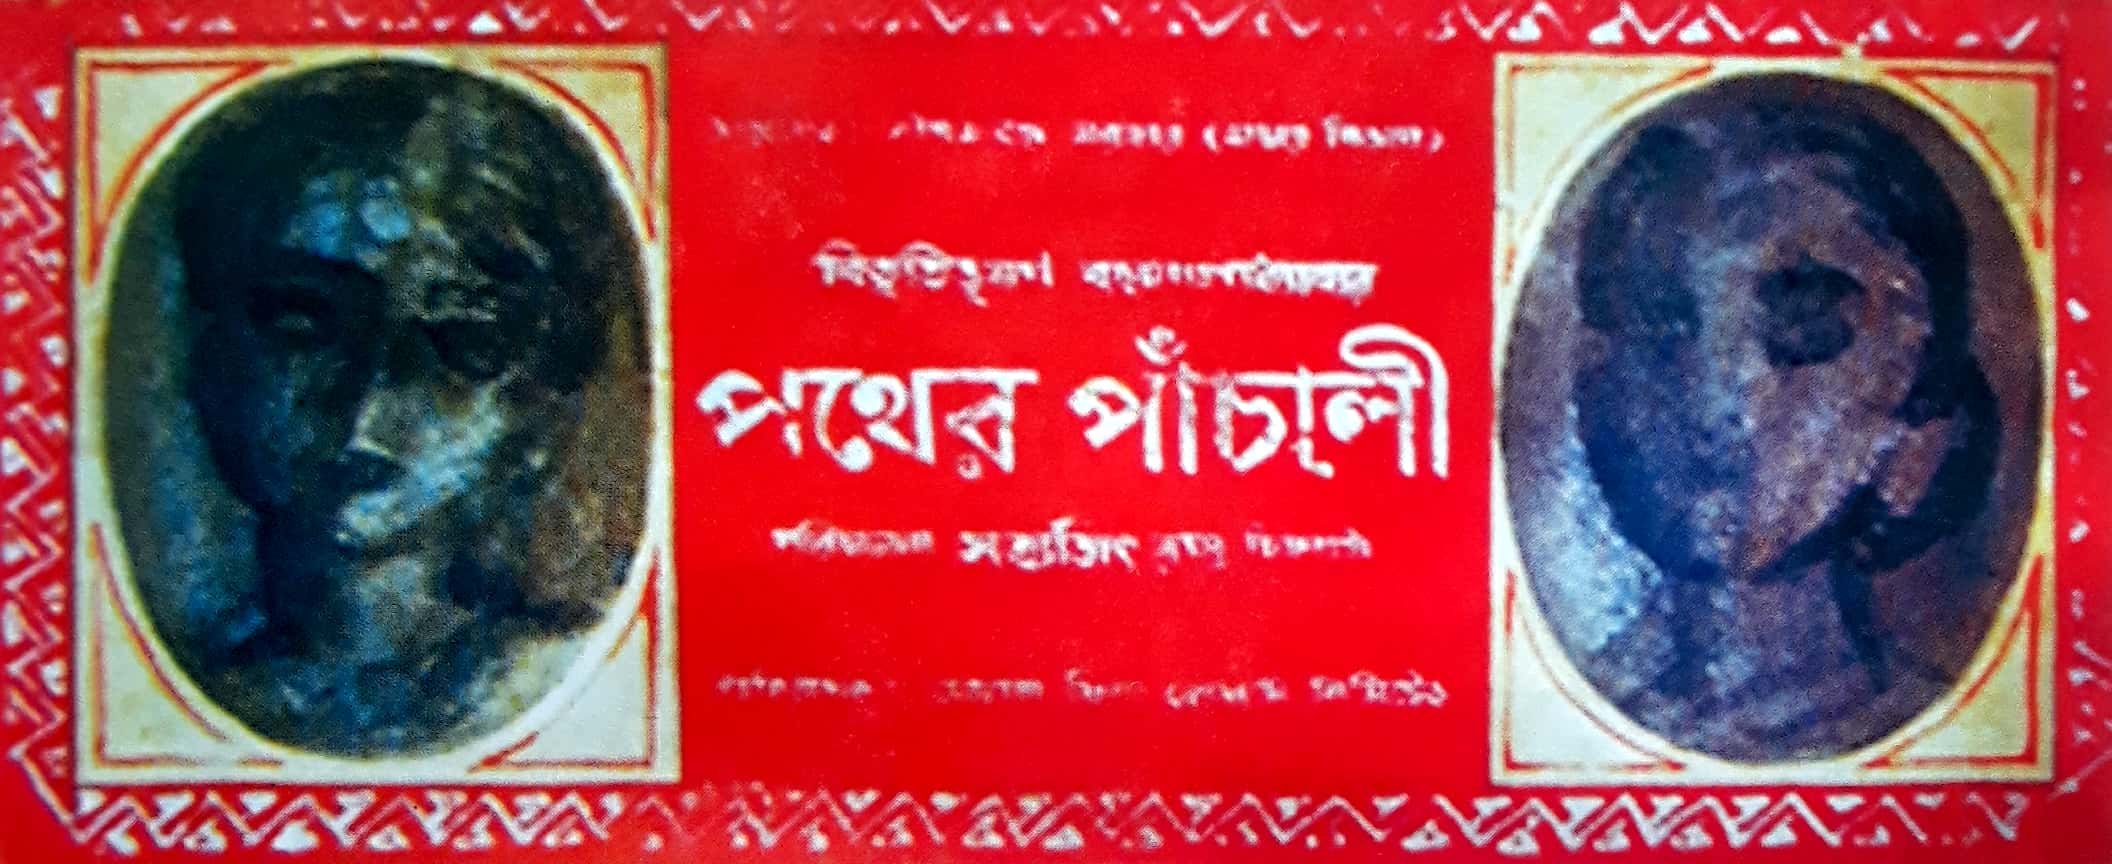 Pather pachali Film Booklet